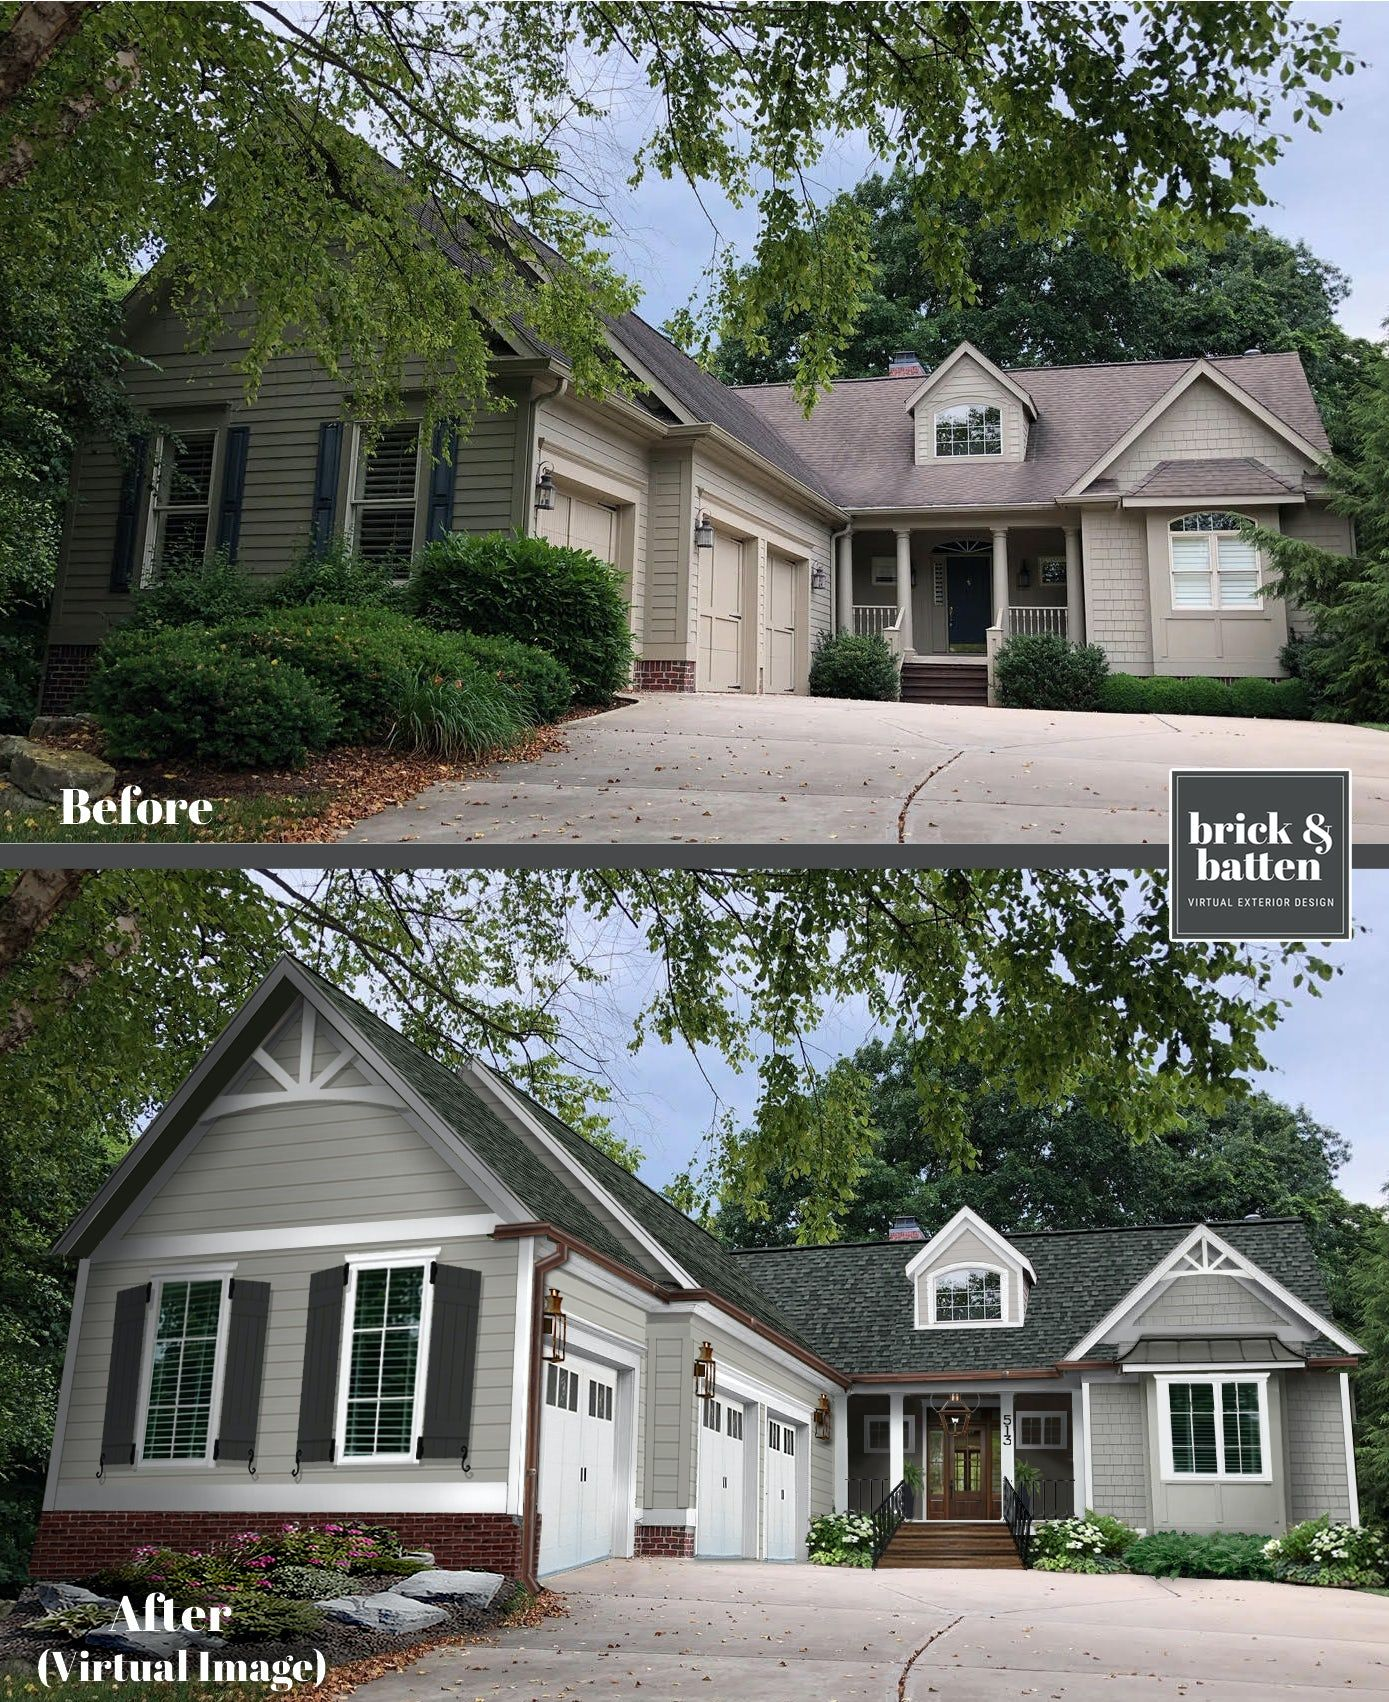 Best 2020 Exterior House Colors When Selling Blog Brick Batten In 2020 Best Exterior House Paint Outdoor House Paint Outside House Paint